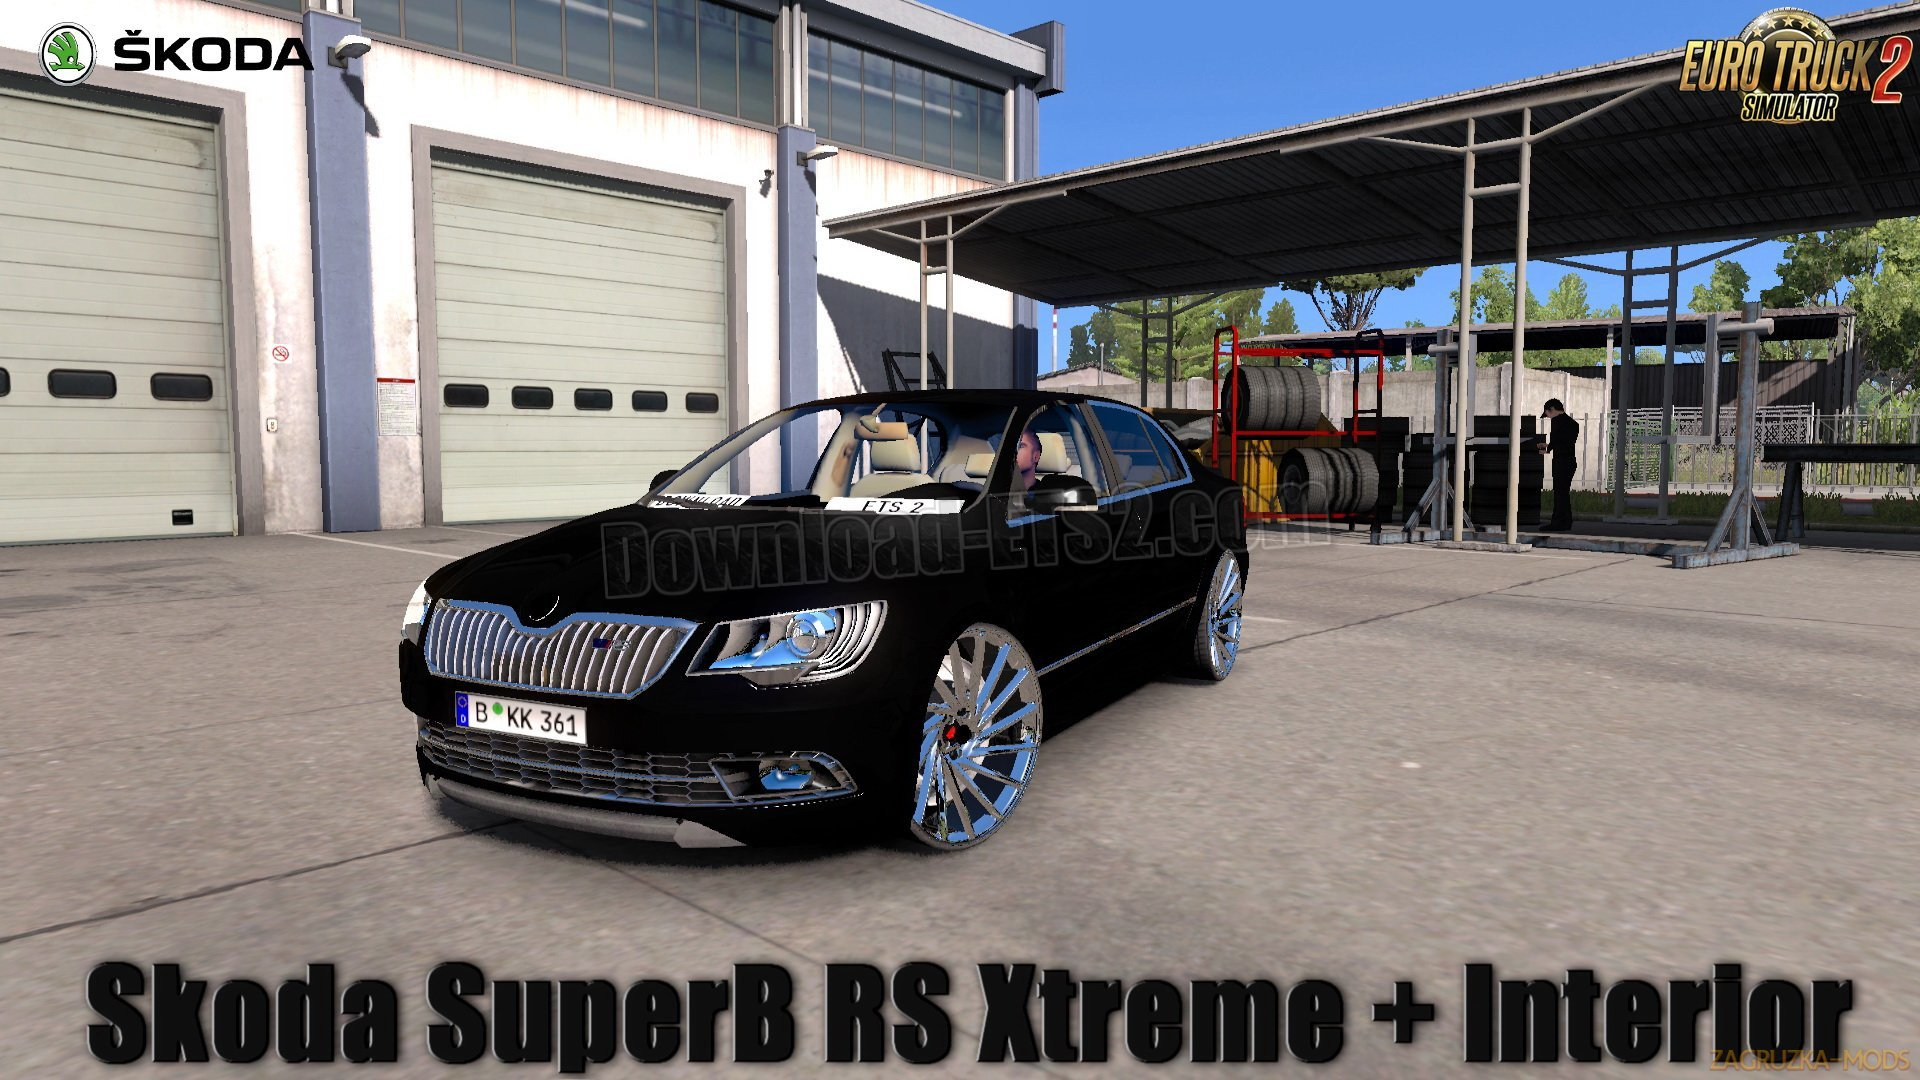 Skoda SuperB RS Xtreme + Interior v1.0 (1.31.x) for ETS 2